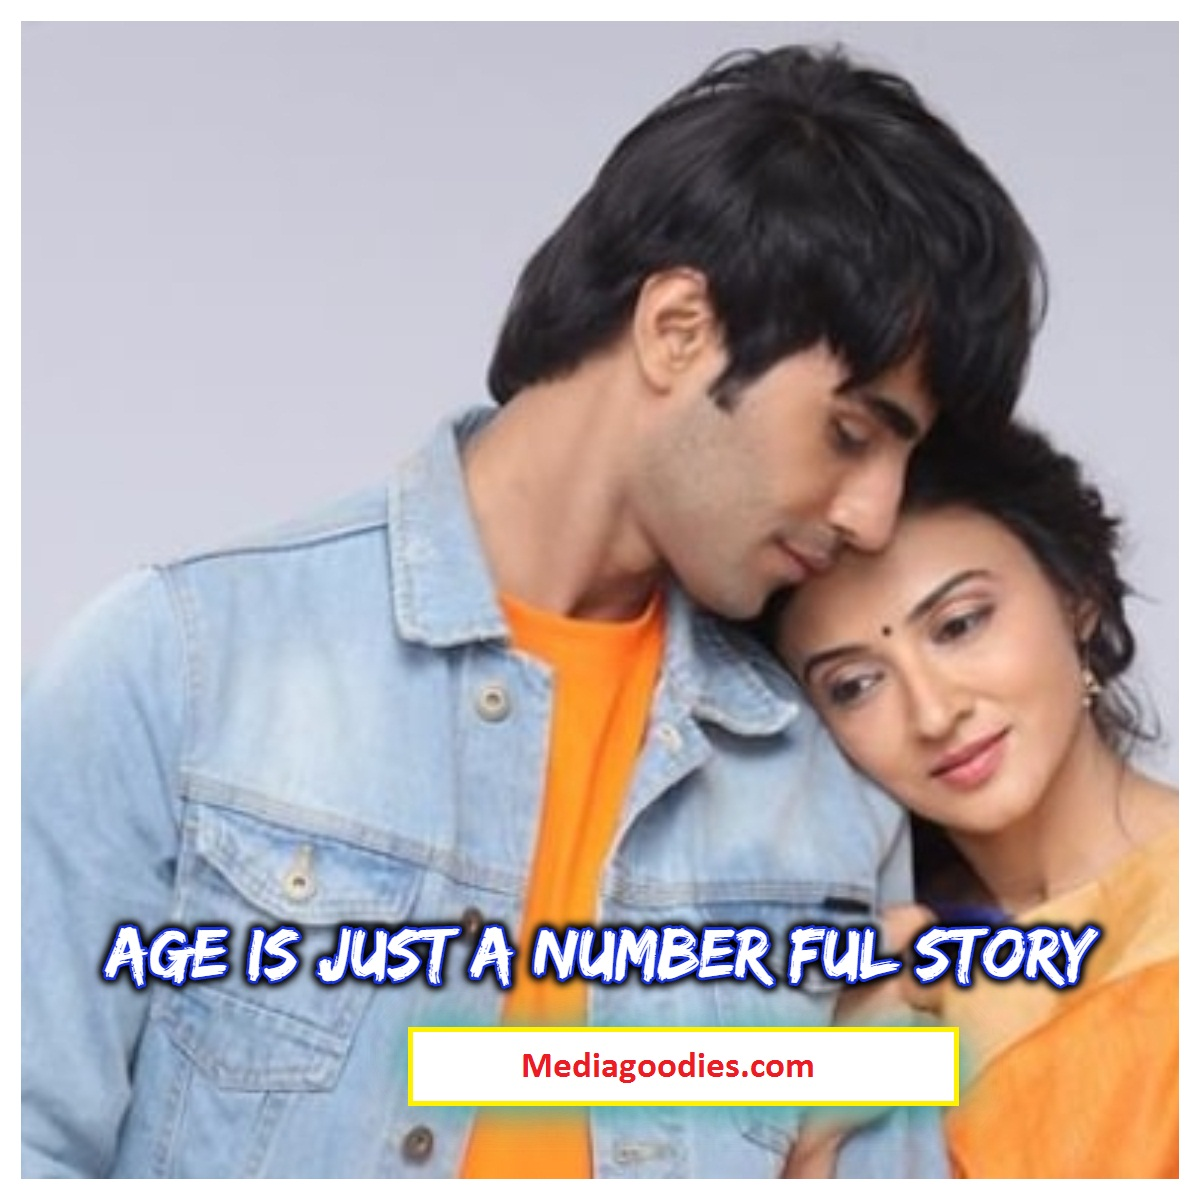 Age Is Just a Number Update Friday 3 July 2020